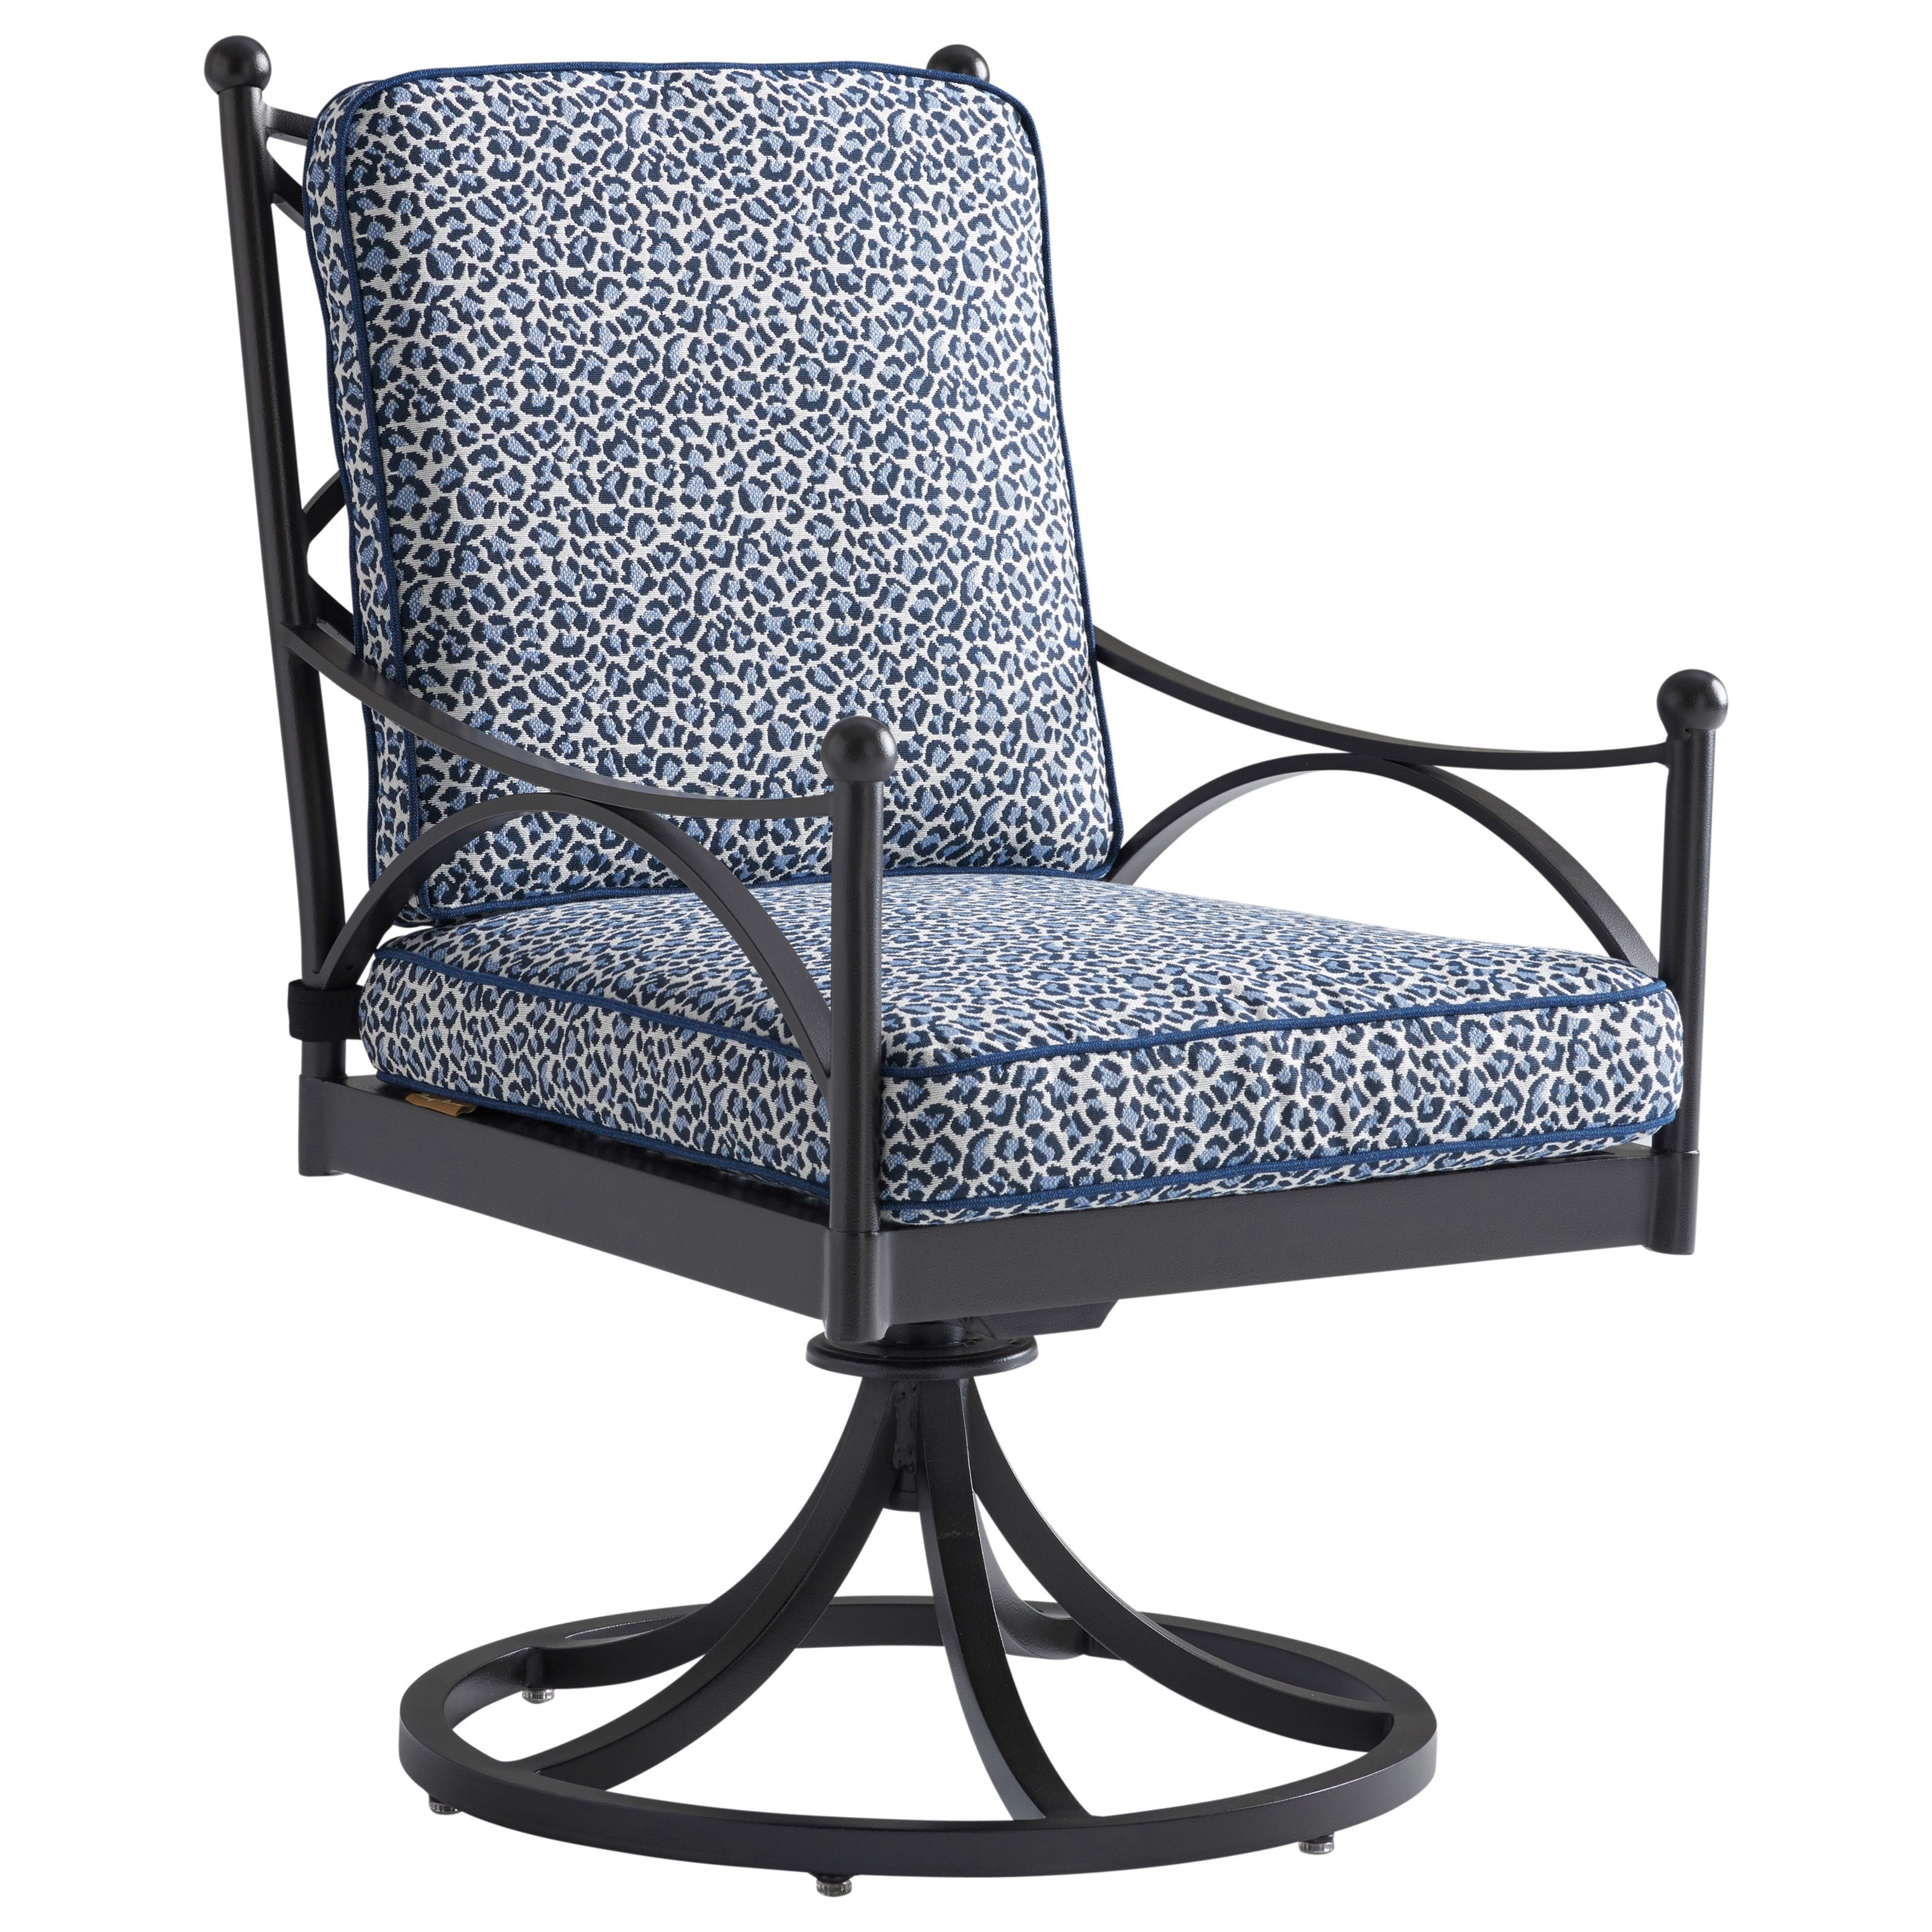 Pavlova Outdoor Swivel Rocker Dining Chair by Tommy Bahama Outdoor Living at Baer's Furniture